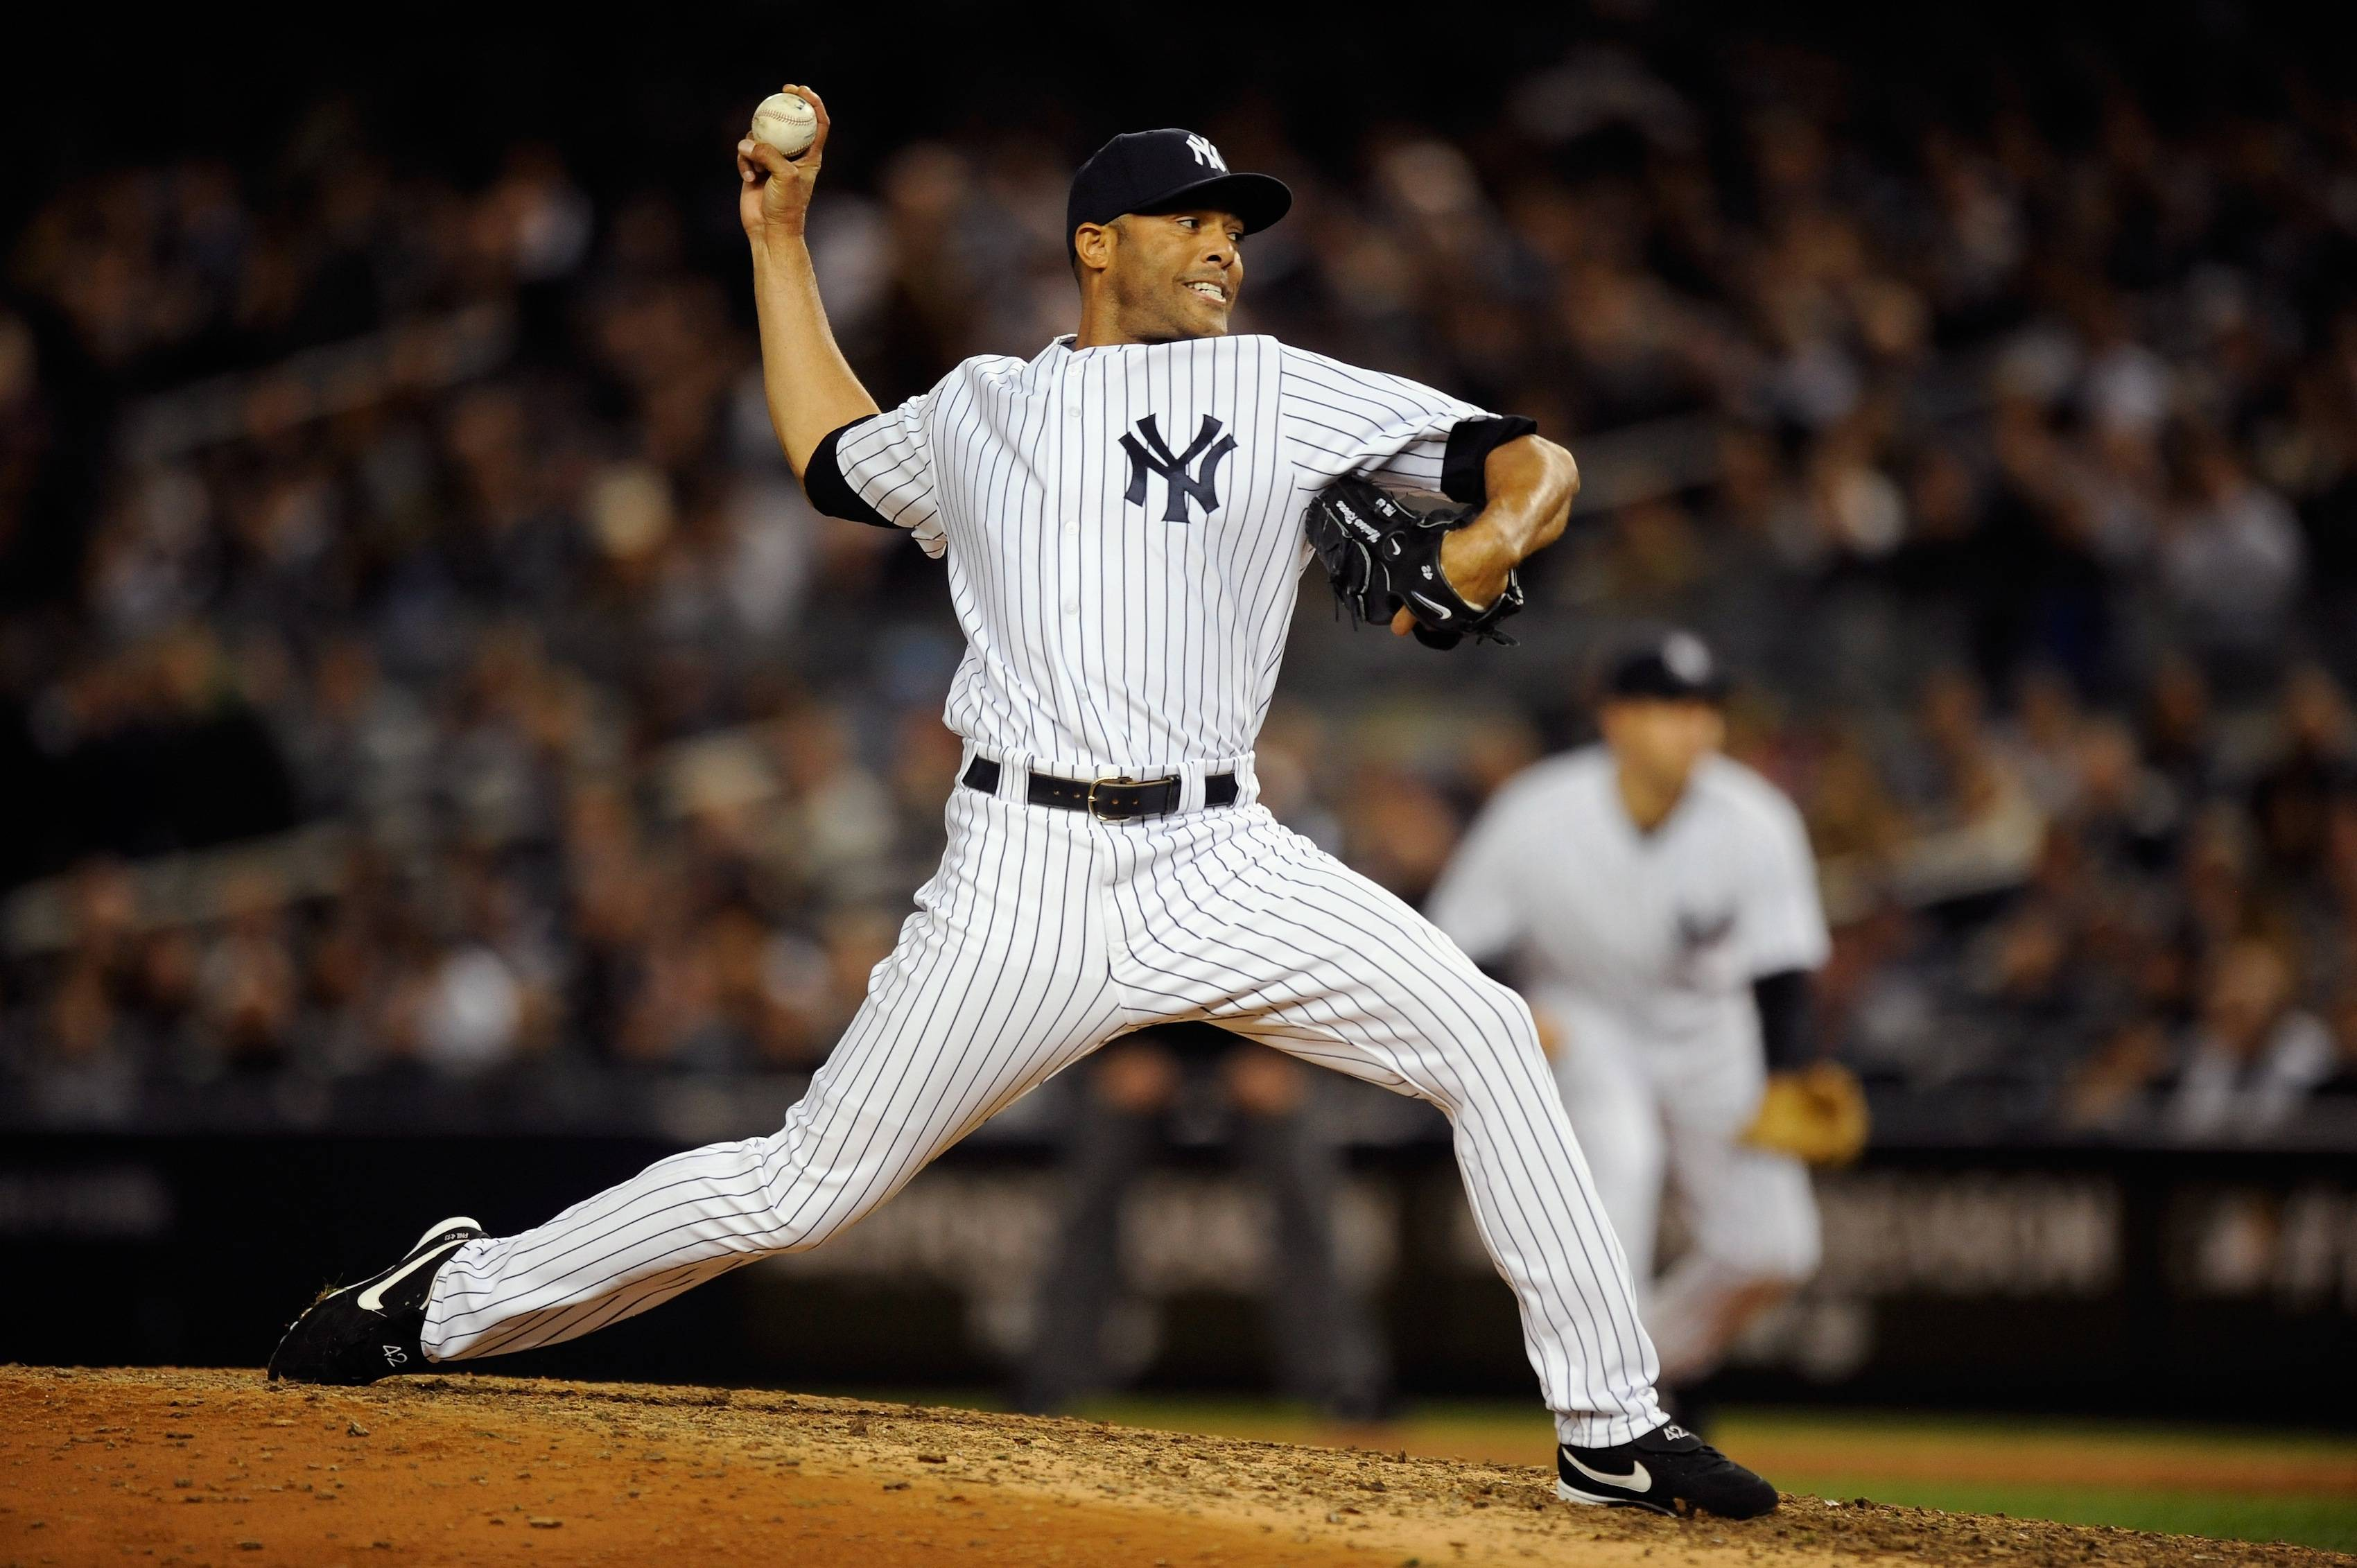 Mariano Rivera, often responsible for closing out Yankees games, prepares a pitch on the mound.